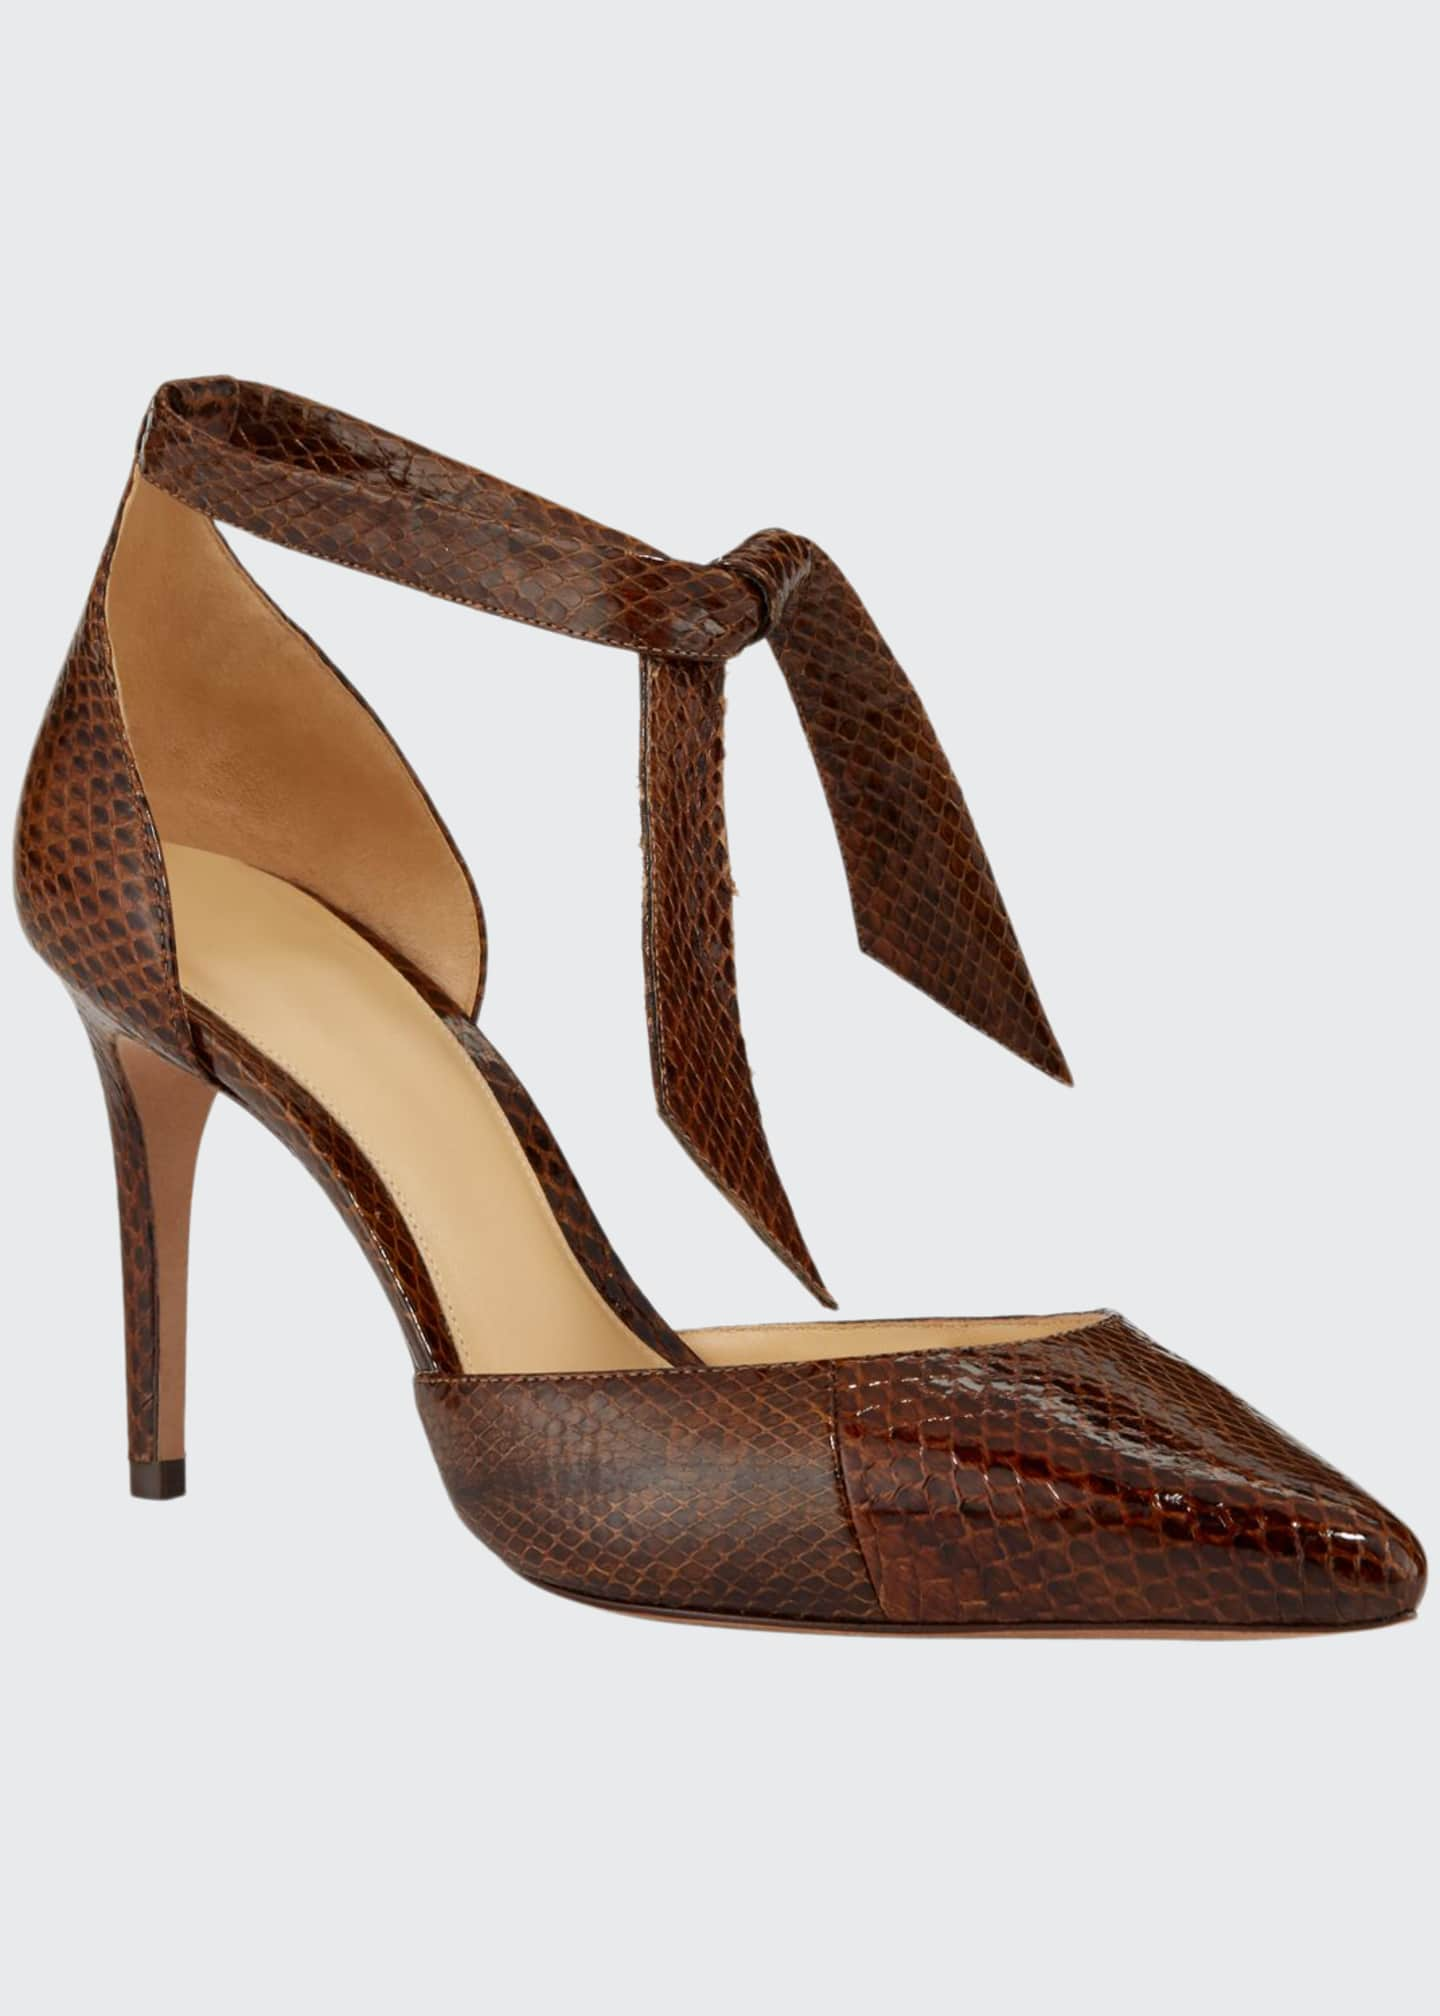 Alexandre Birman New Clarita Snakeskin Pumps